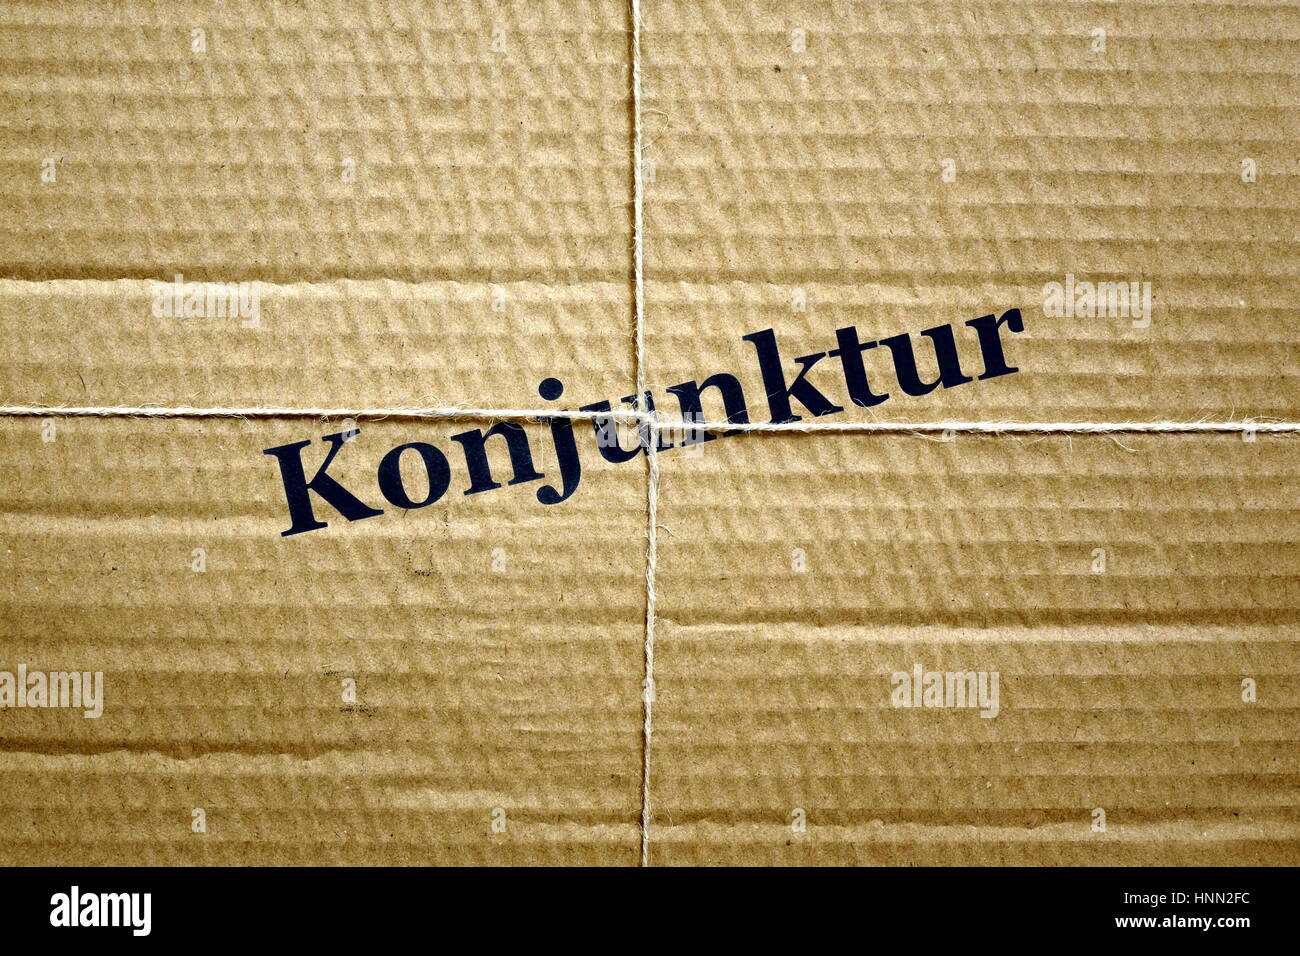 Berlin, Germany. 30th May, 2016. ILLUSTRATION - Image of a bound up package with the word 'Konjunktur' (economic - Stock Image